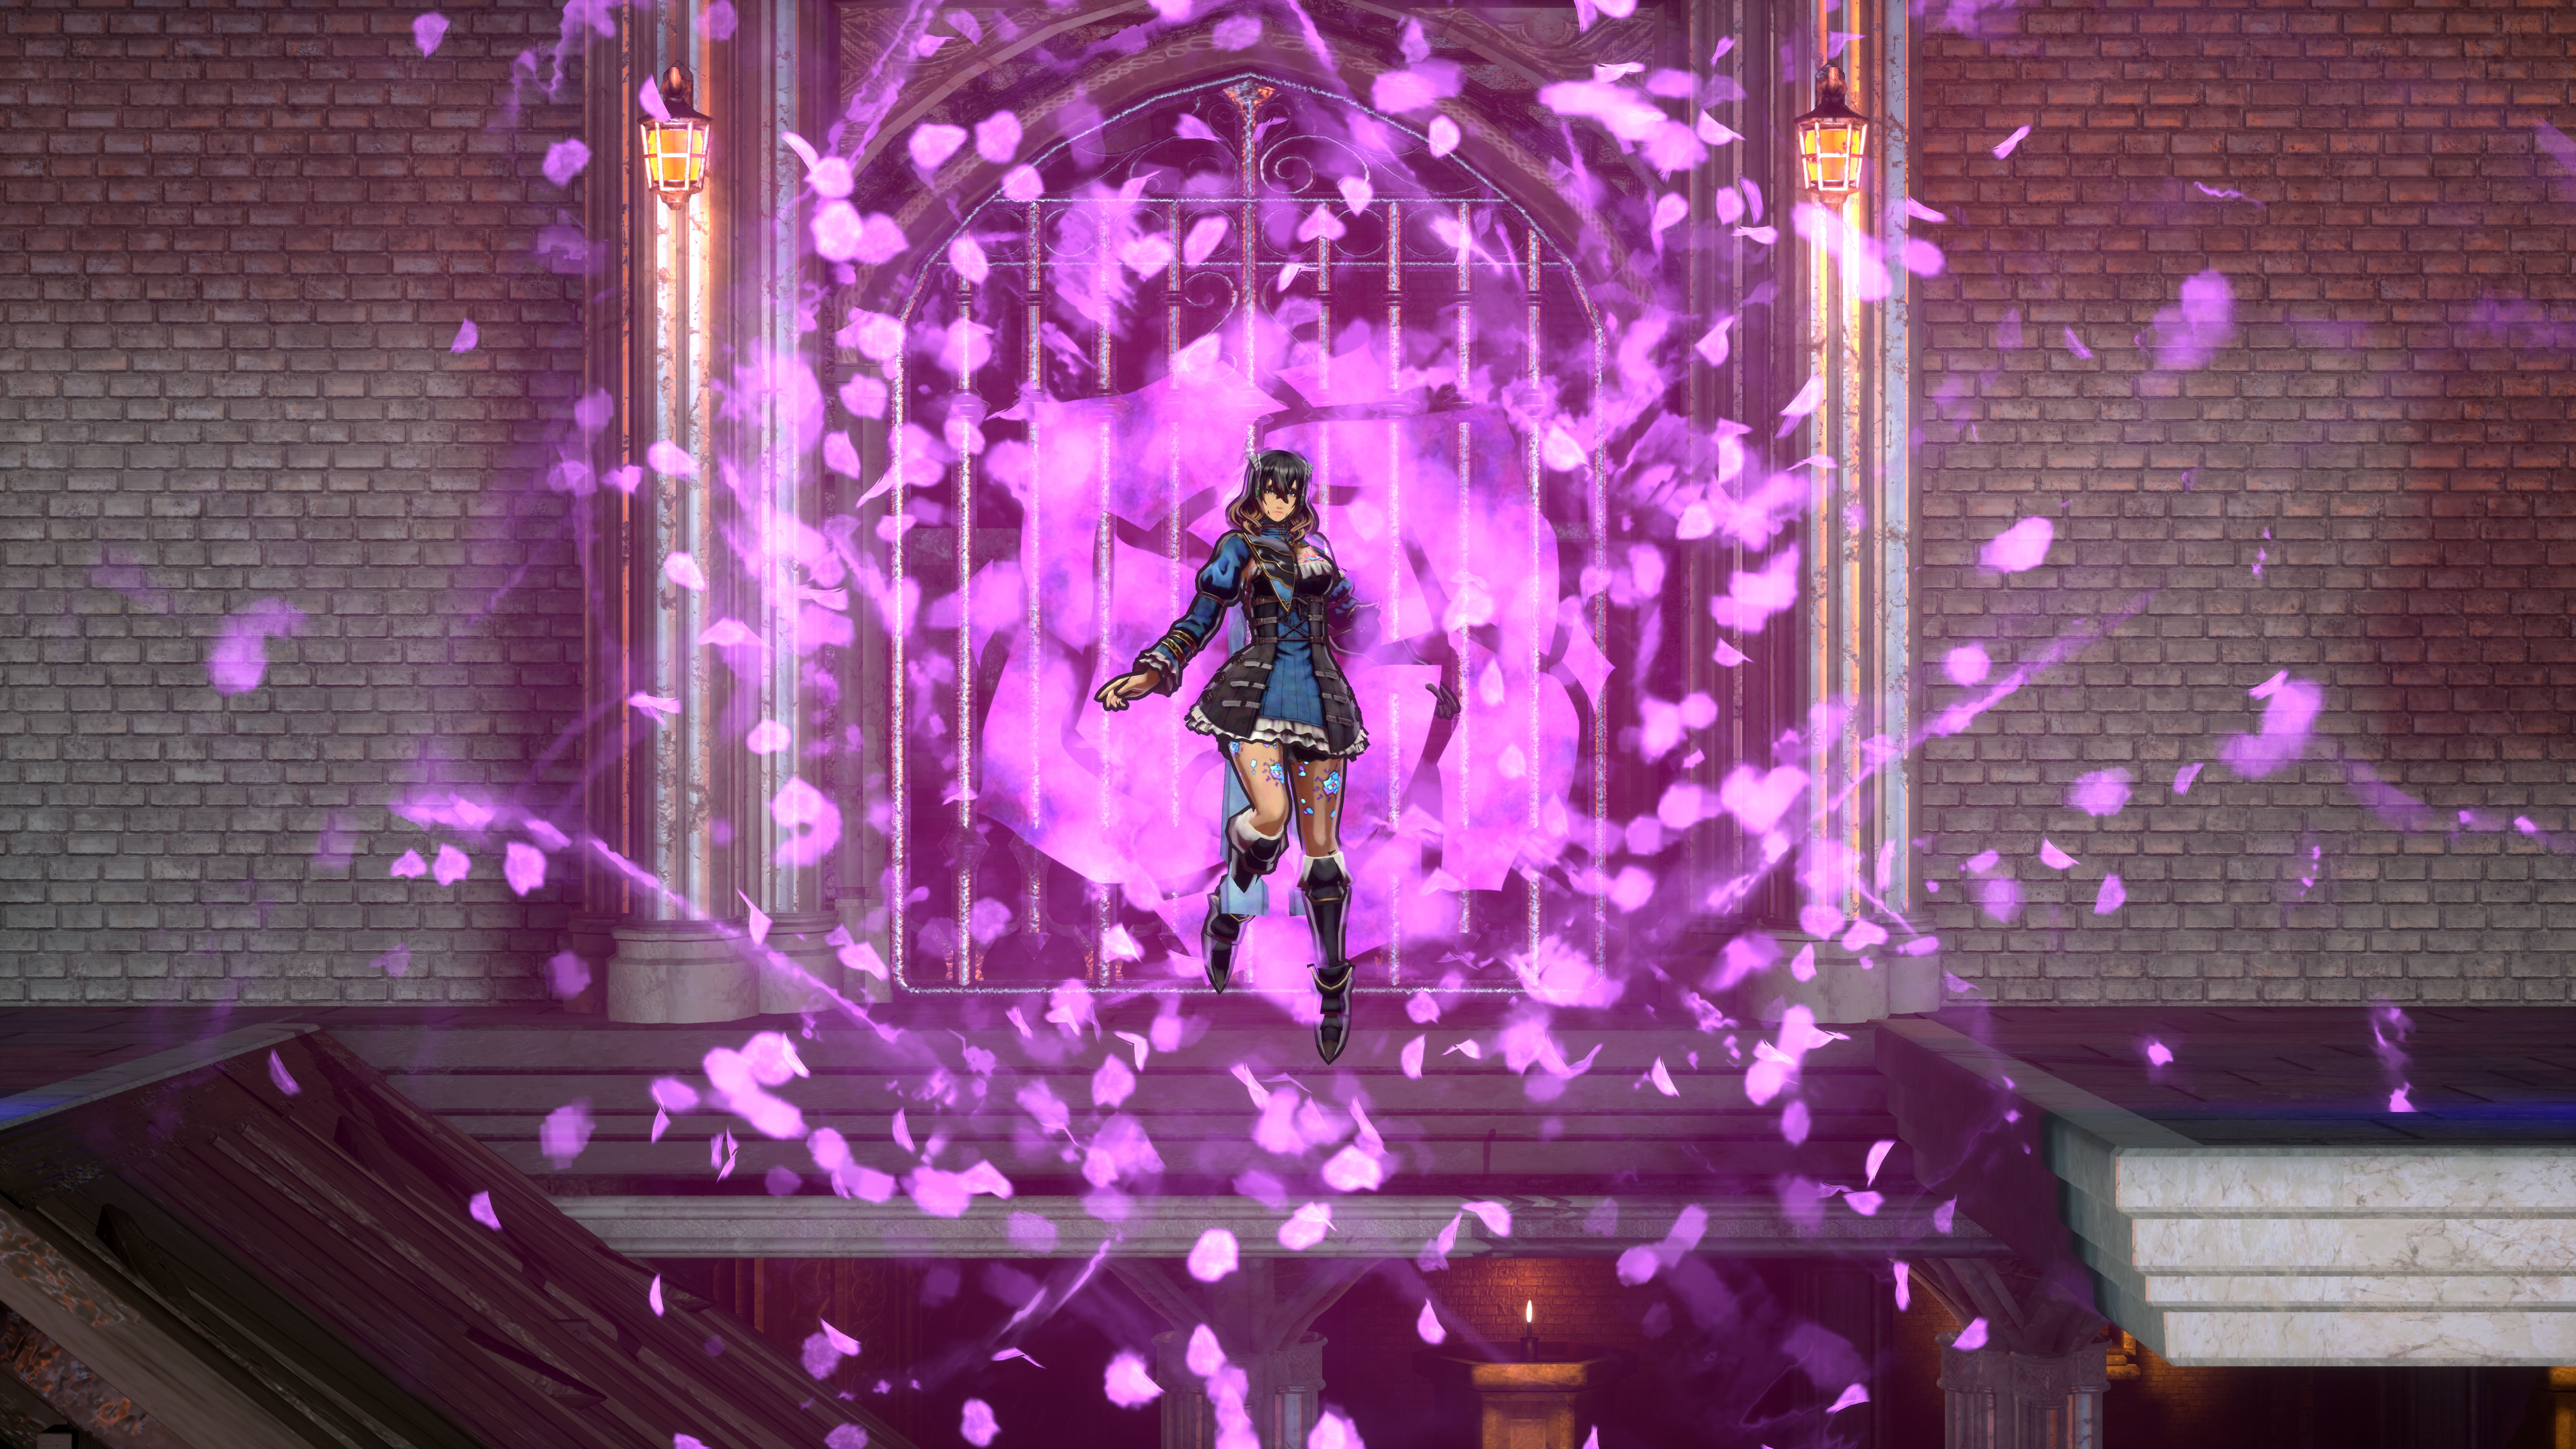 Bloodstained: Ritual of the Night - Bloodstained: Ritual of the Night 8K